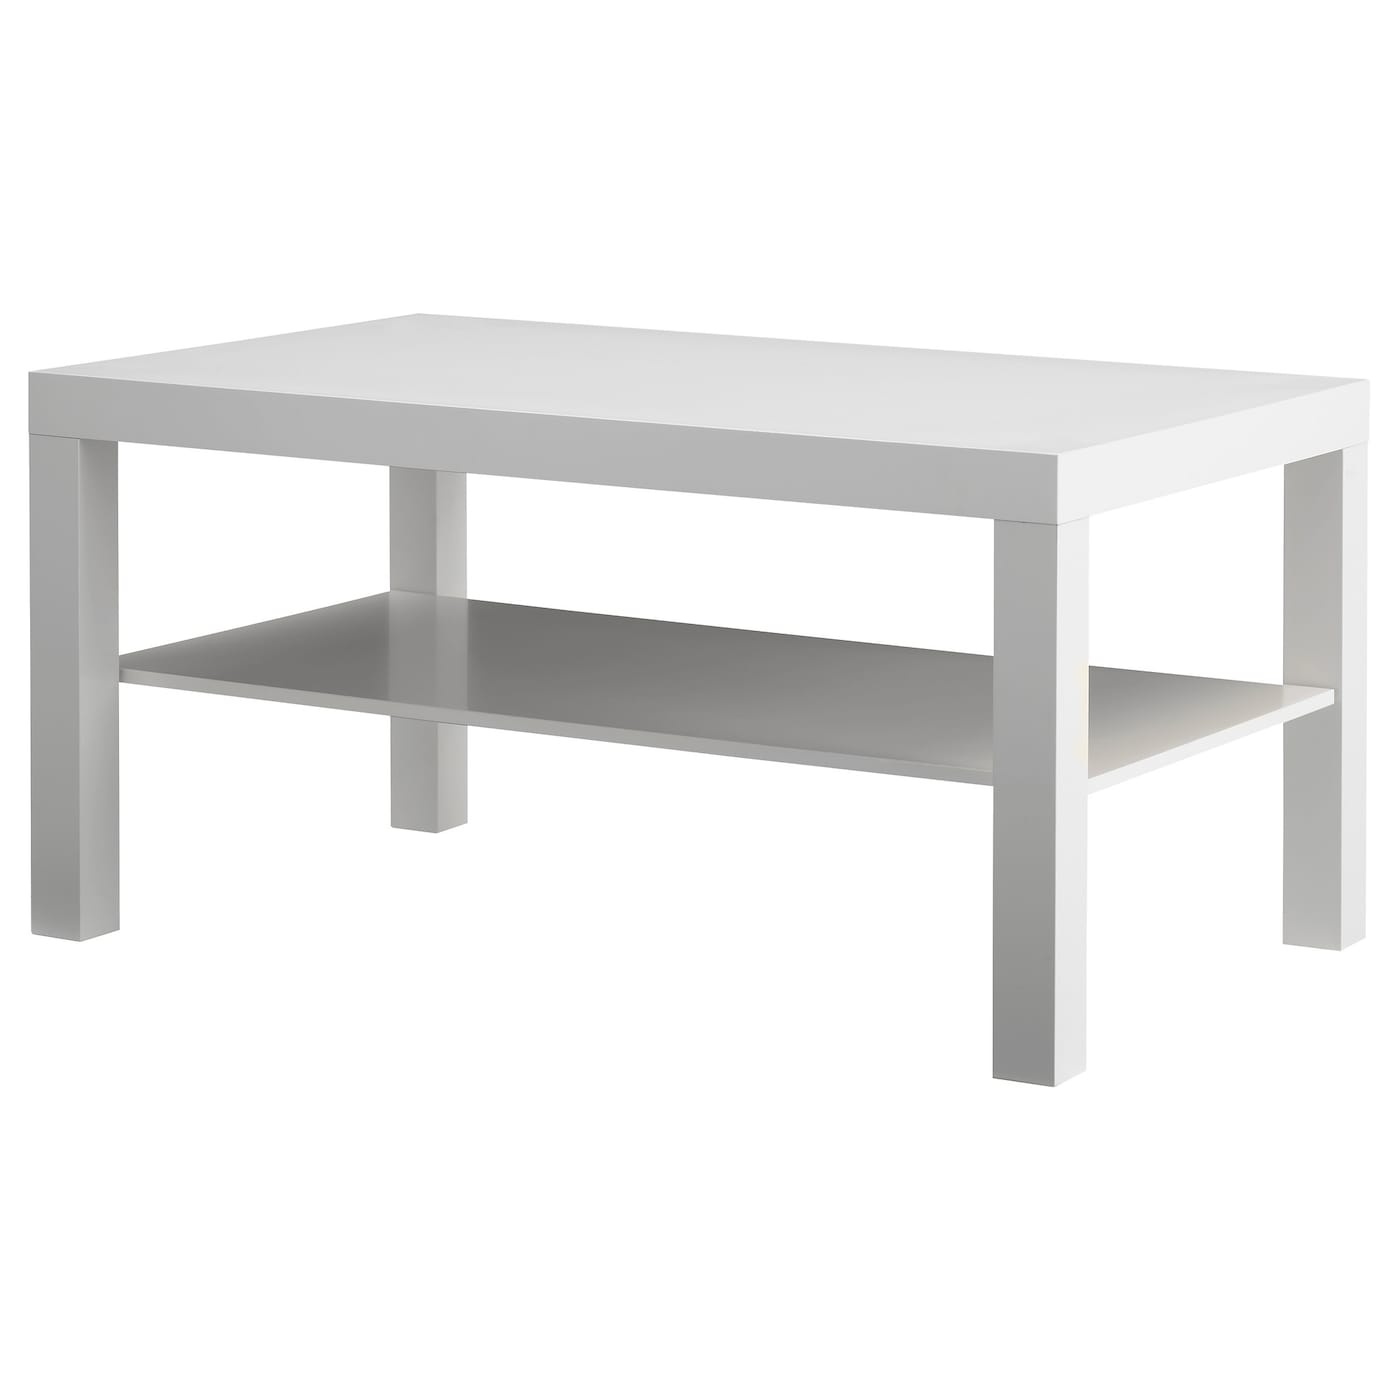 Lack coffee table white 90x55 cm ikea - Table basse ikea avec tiroir ...